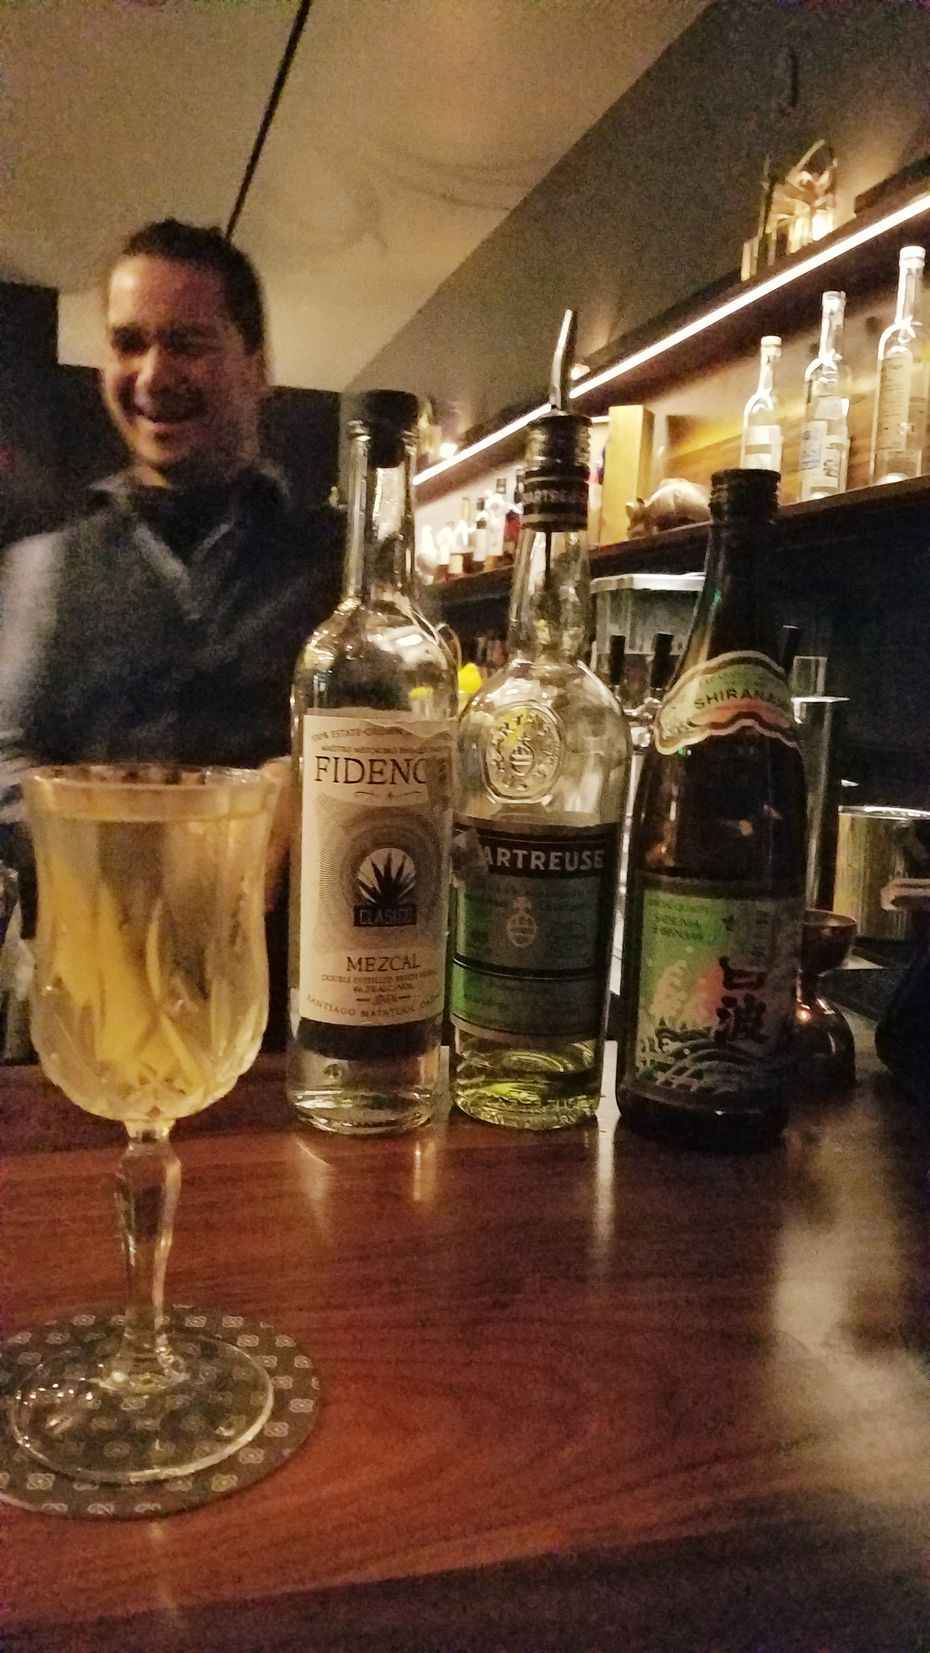 Shochu can be challenging to use in cocktails because of its delicate, low-proof nature, but at Jettison, in West Dallas, bar manager George Kaiho's beautifully blends earthy sweet potato-based shochu with mezcal and vegetal Green Chartreuse for his Earth Wind and Fire.